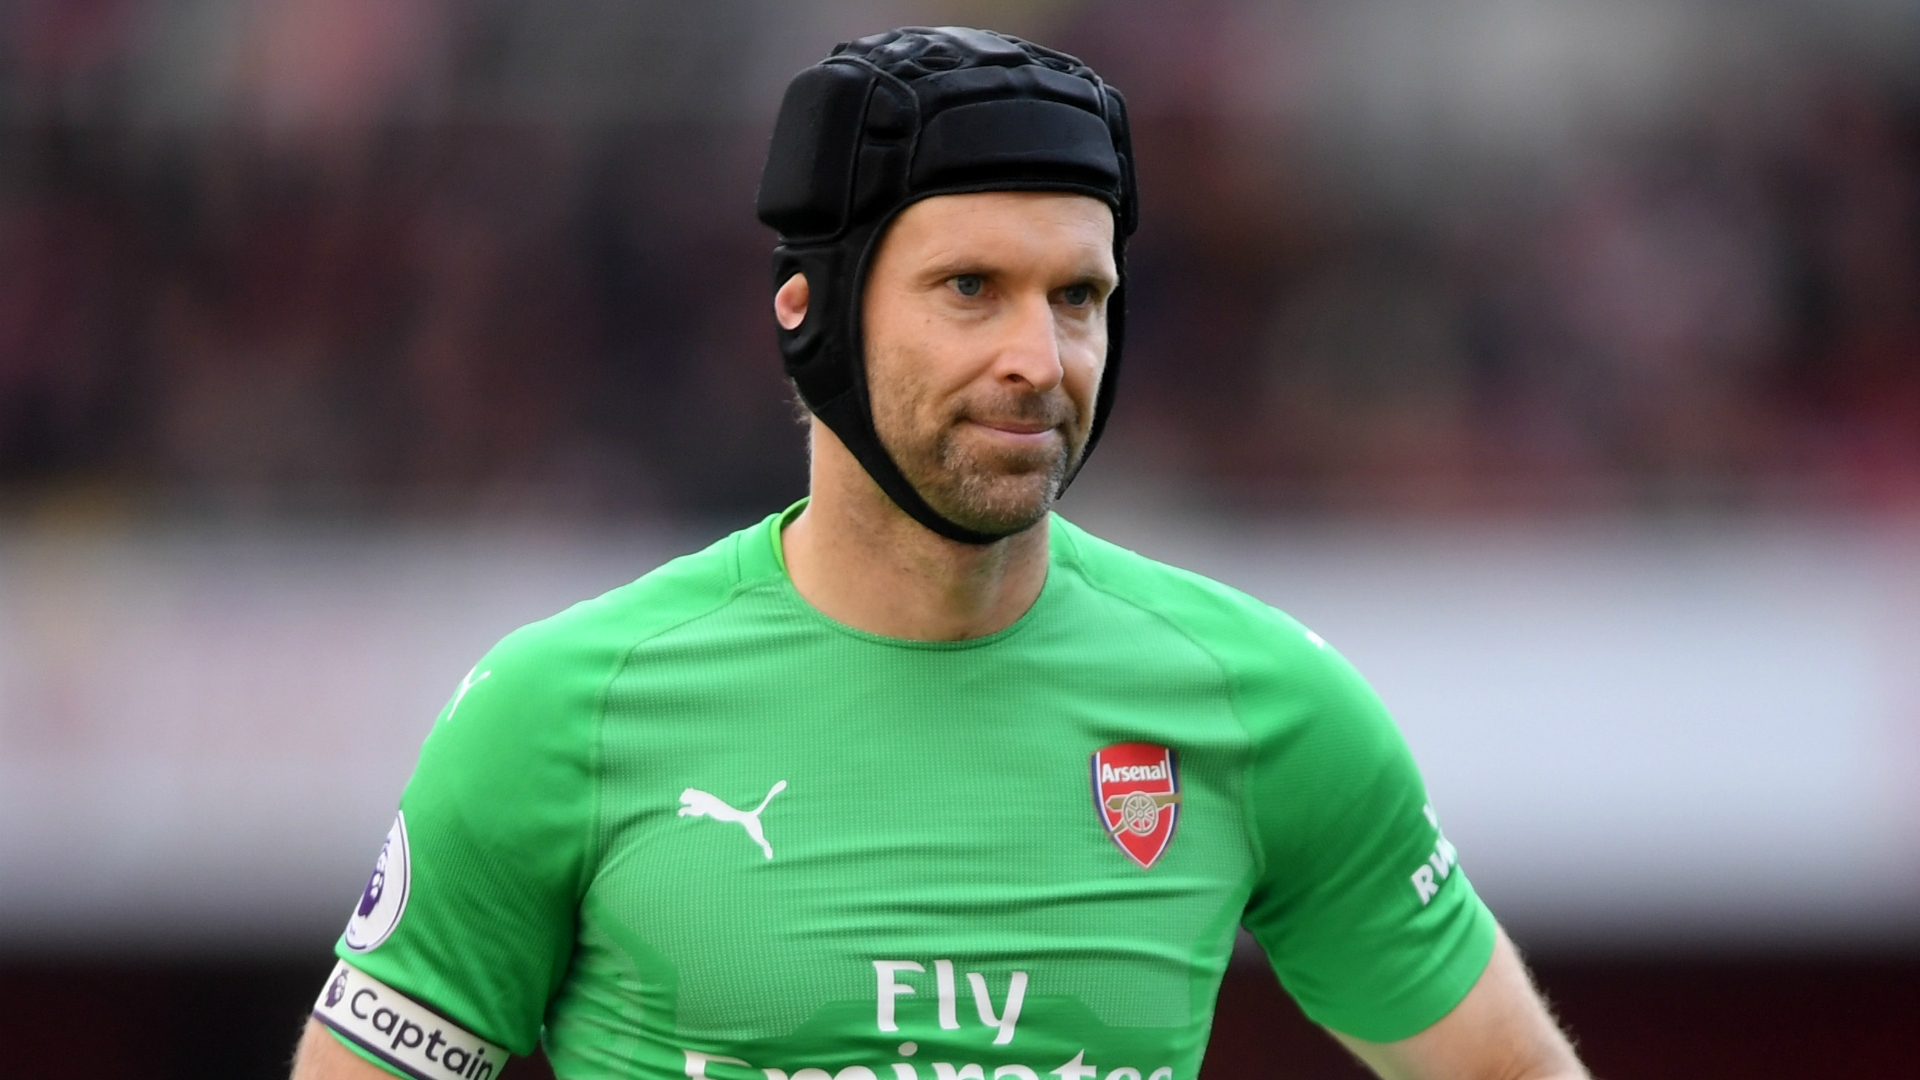 OFFICIAL – Petr Cech to retire at the end of the season